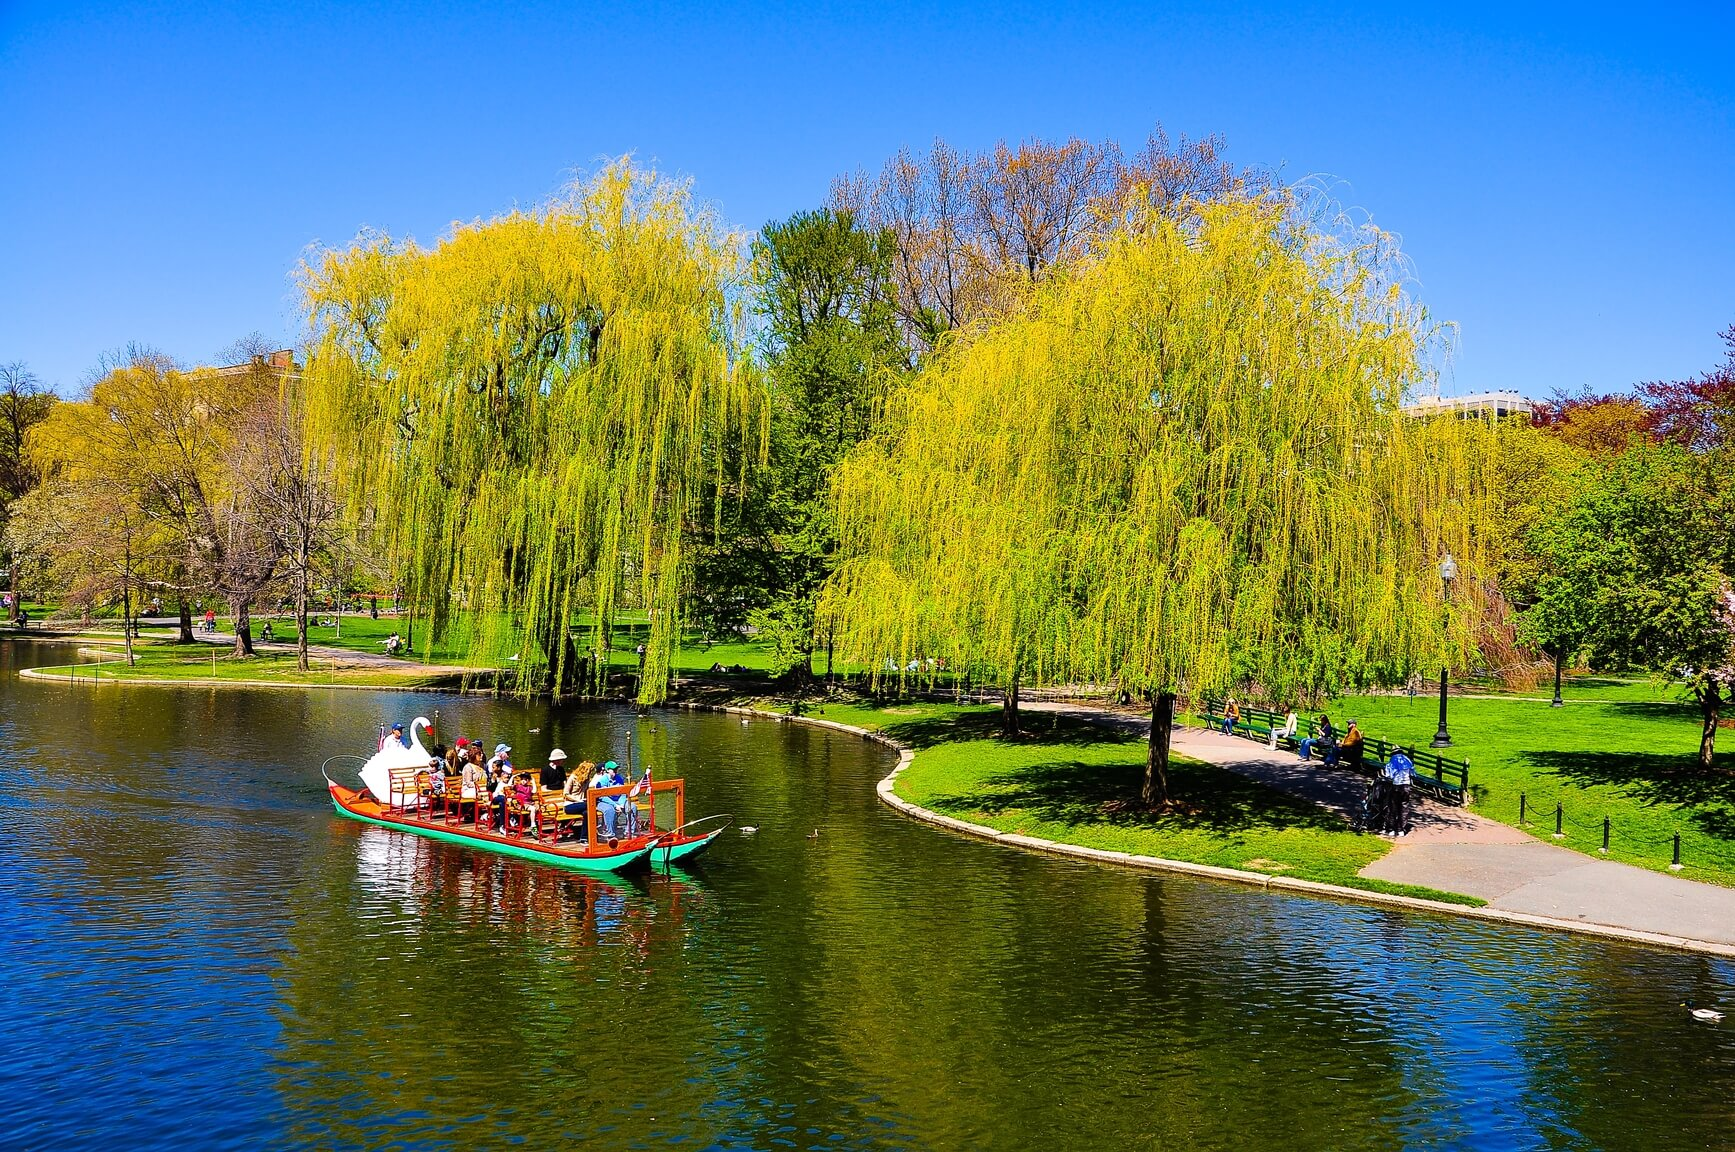 **PRICE DROP** Barcelona, Spain to Boston, USA for only €111 roundtrip